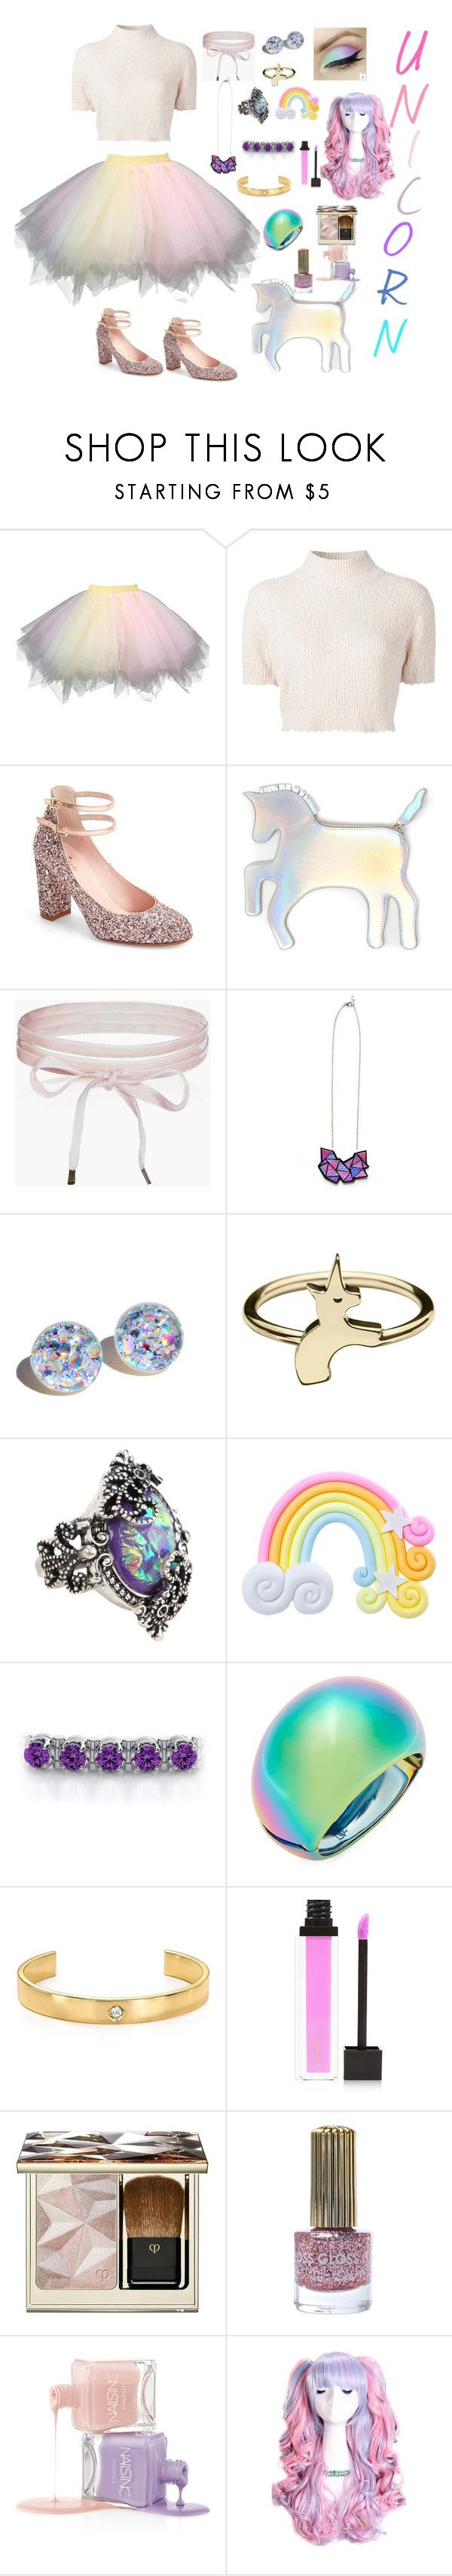 """""""Halloween/ Day of Death"""" by rebeca-frausto on Polyvore featuring Rachel Comey, Kate Spade, WithChic, Boohoo, Rad+Refined, Diane Von Furstenberg, Jules Smith, Jouer, Clé de Peau Beauté y Floss Gloss"""